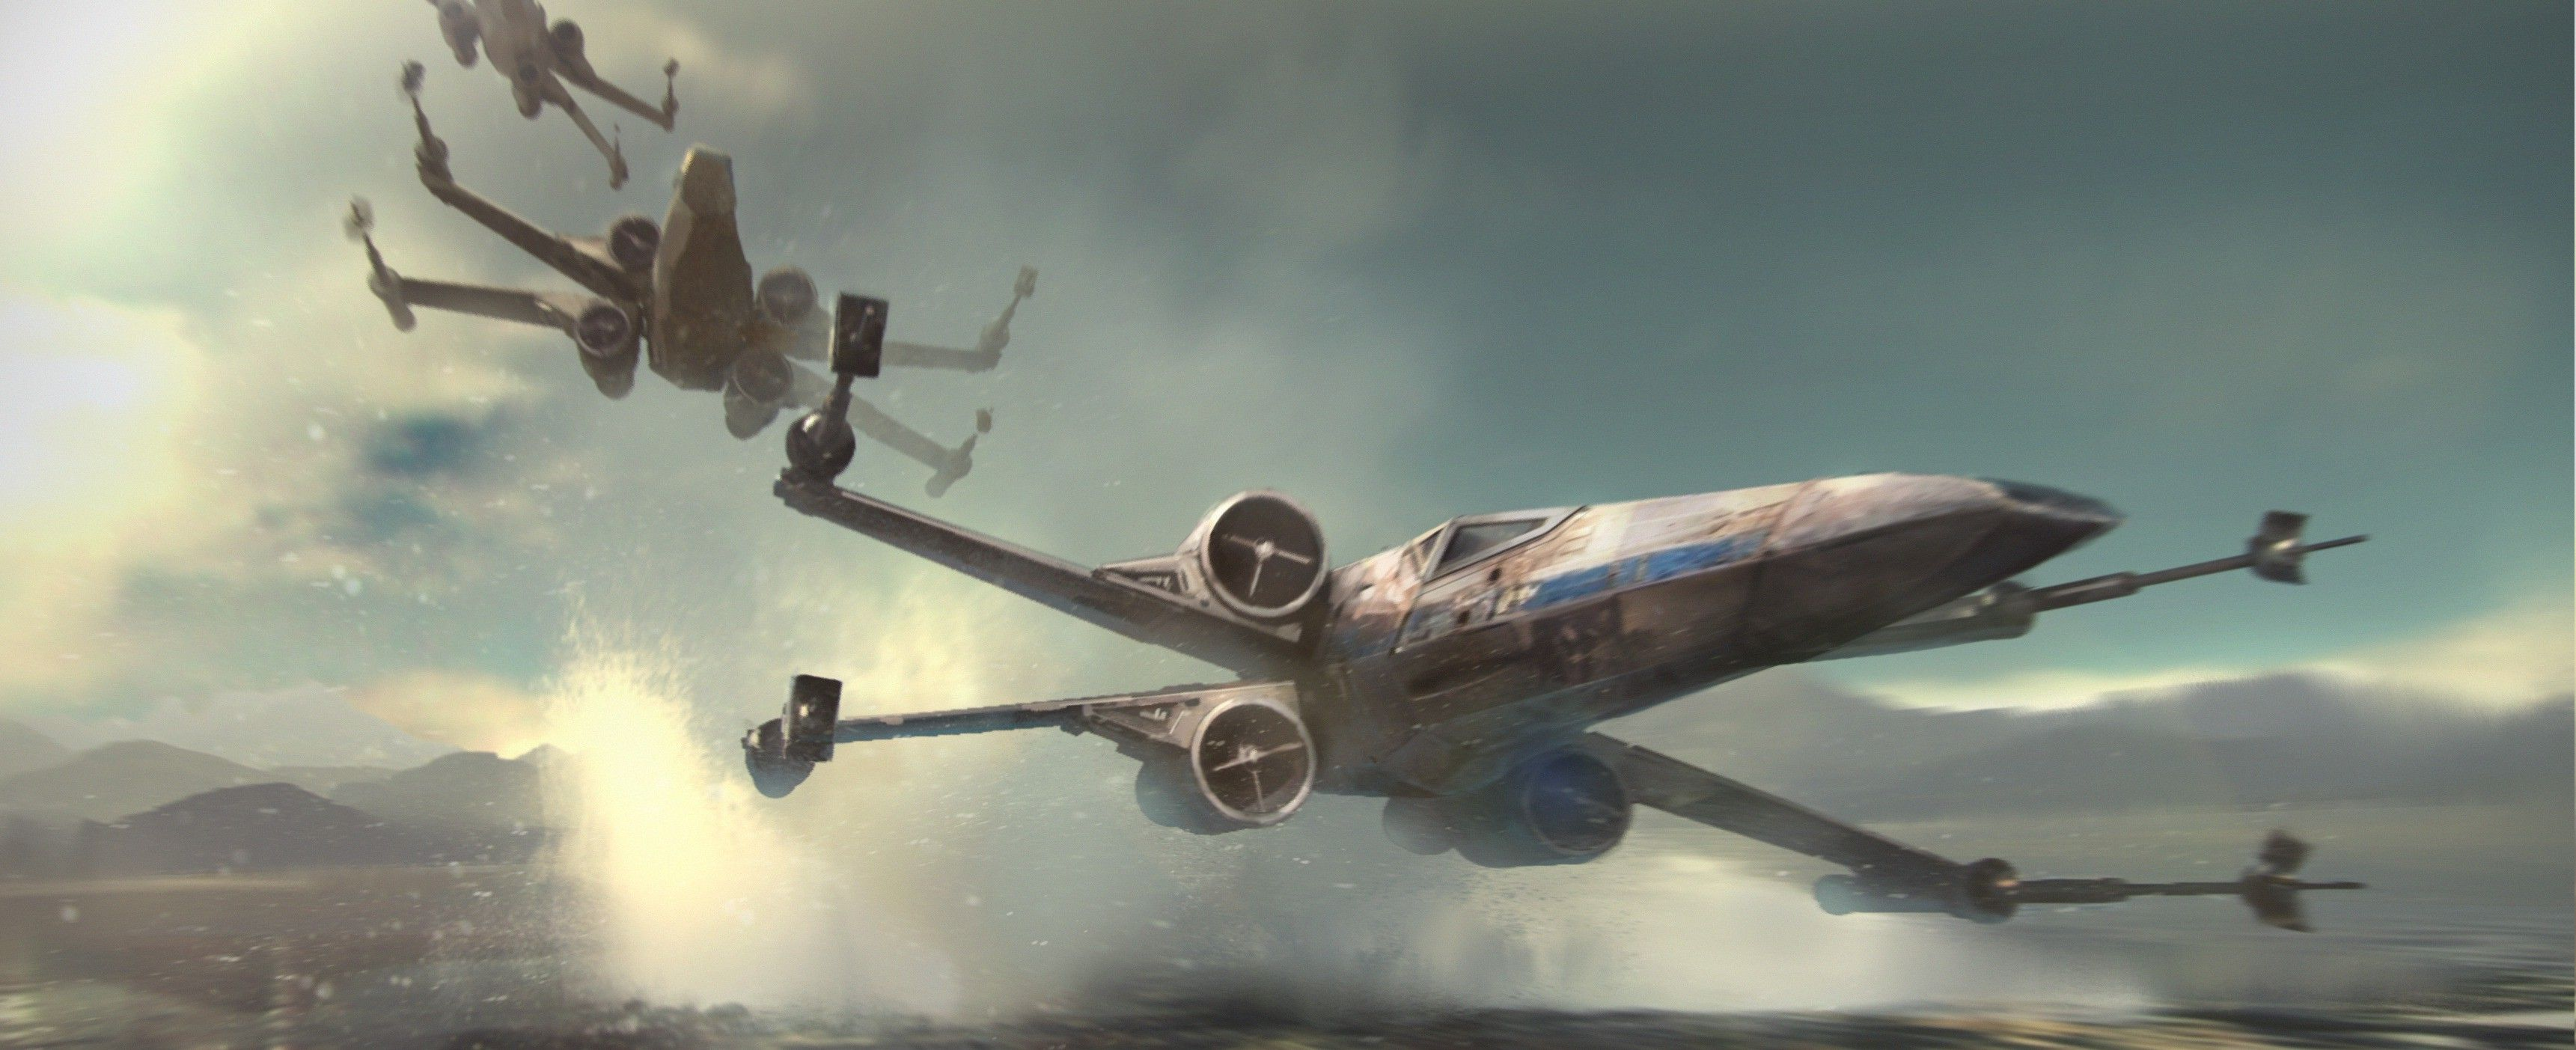 Xwing Hd Wallpapers Backgrounds Wallpaper X Wing Wings